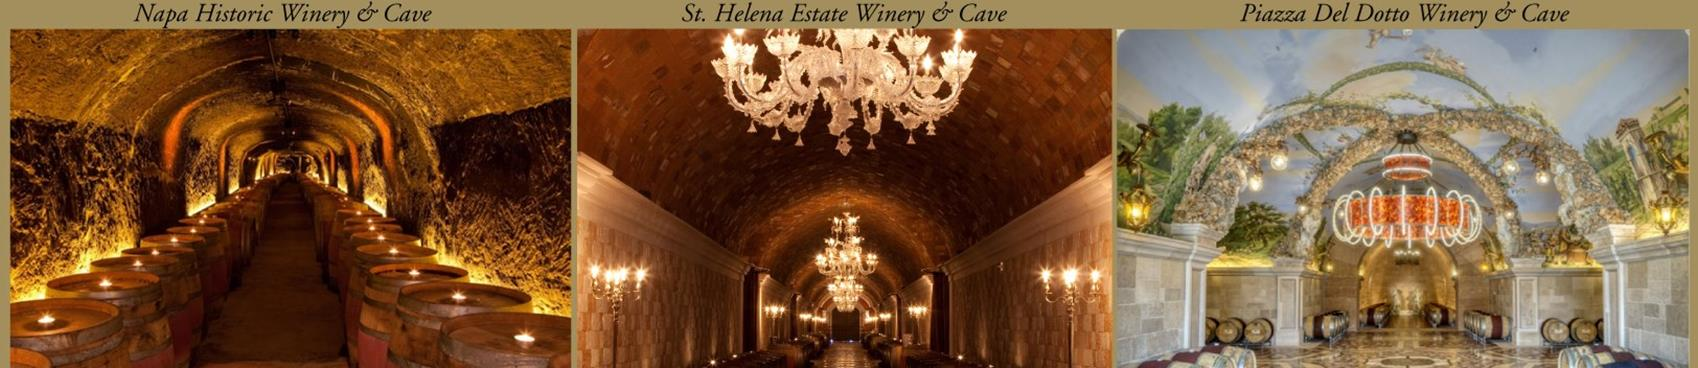 A image of Del Dotto Winery & Caves St. Helena